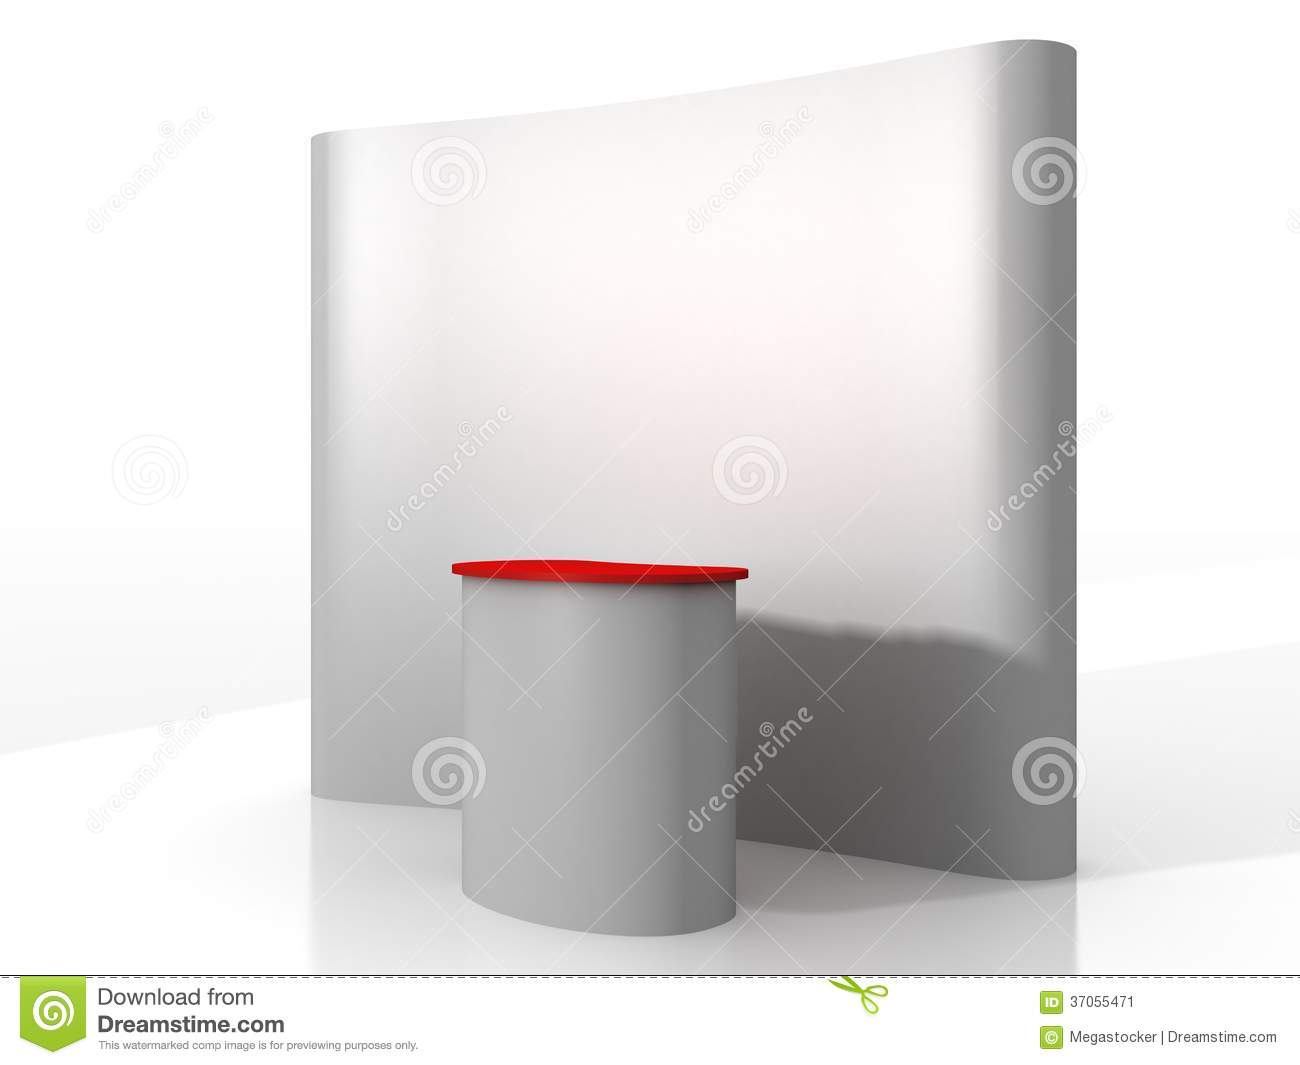 Exhibition Stand Wallpaper : Exhibition stand kiosk stock image